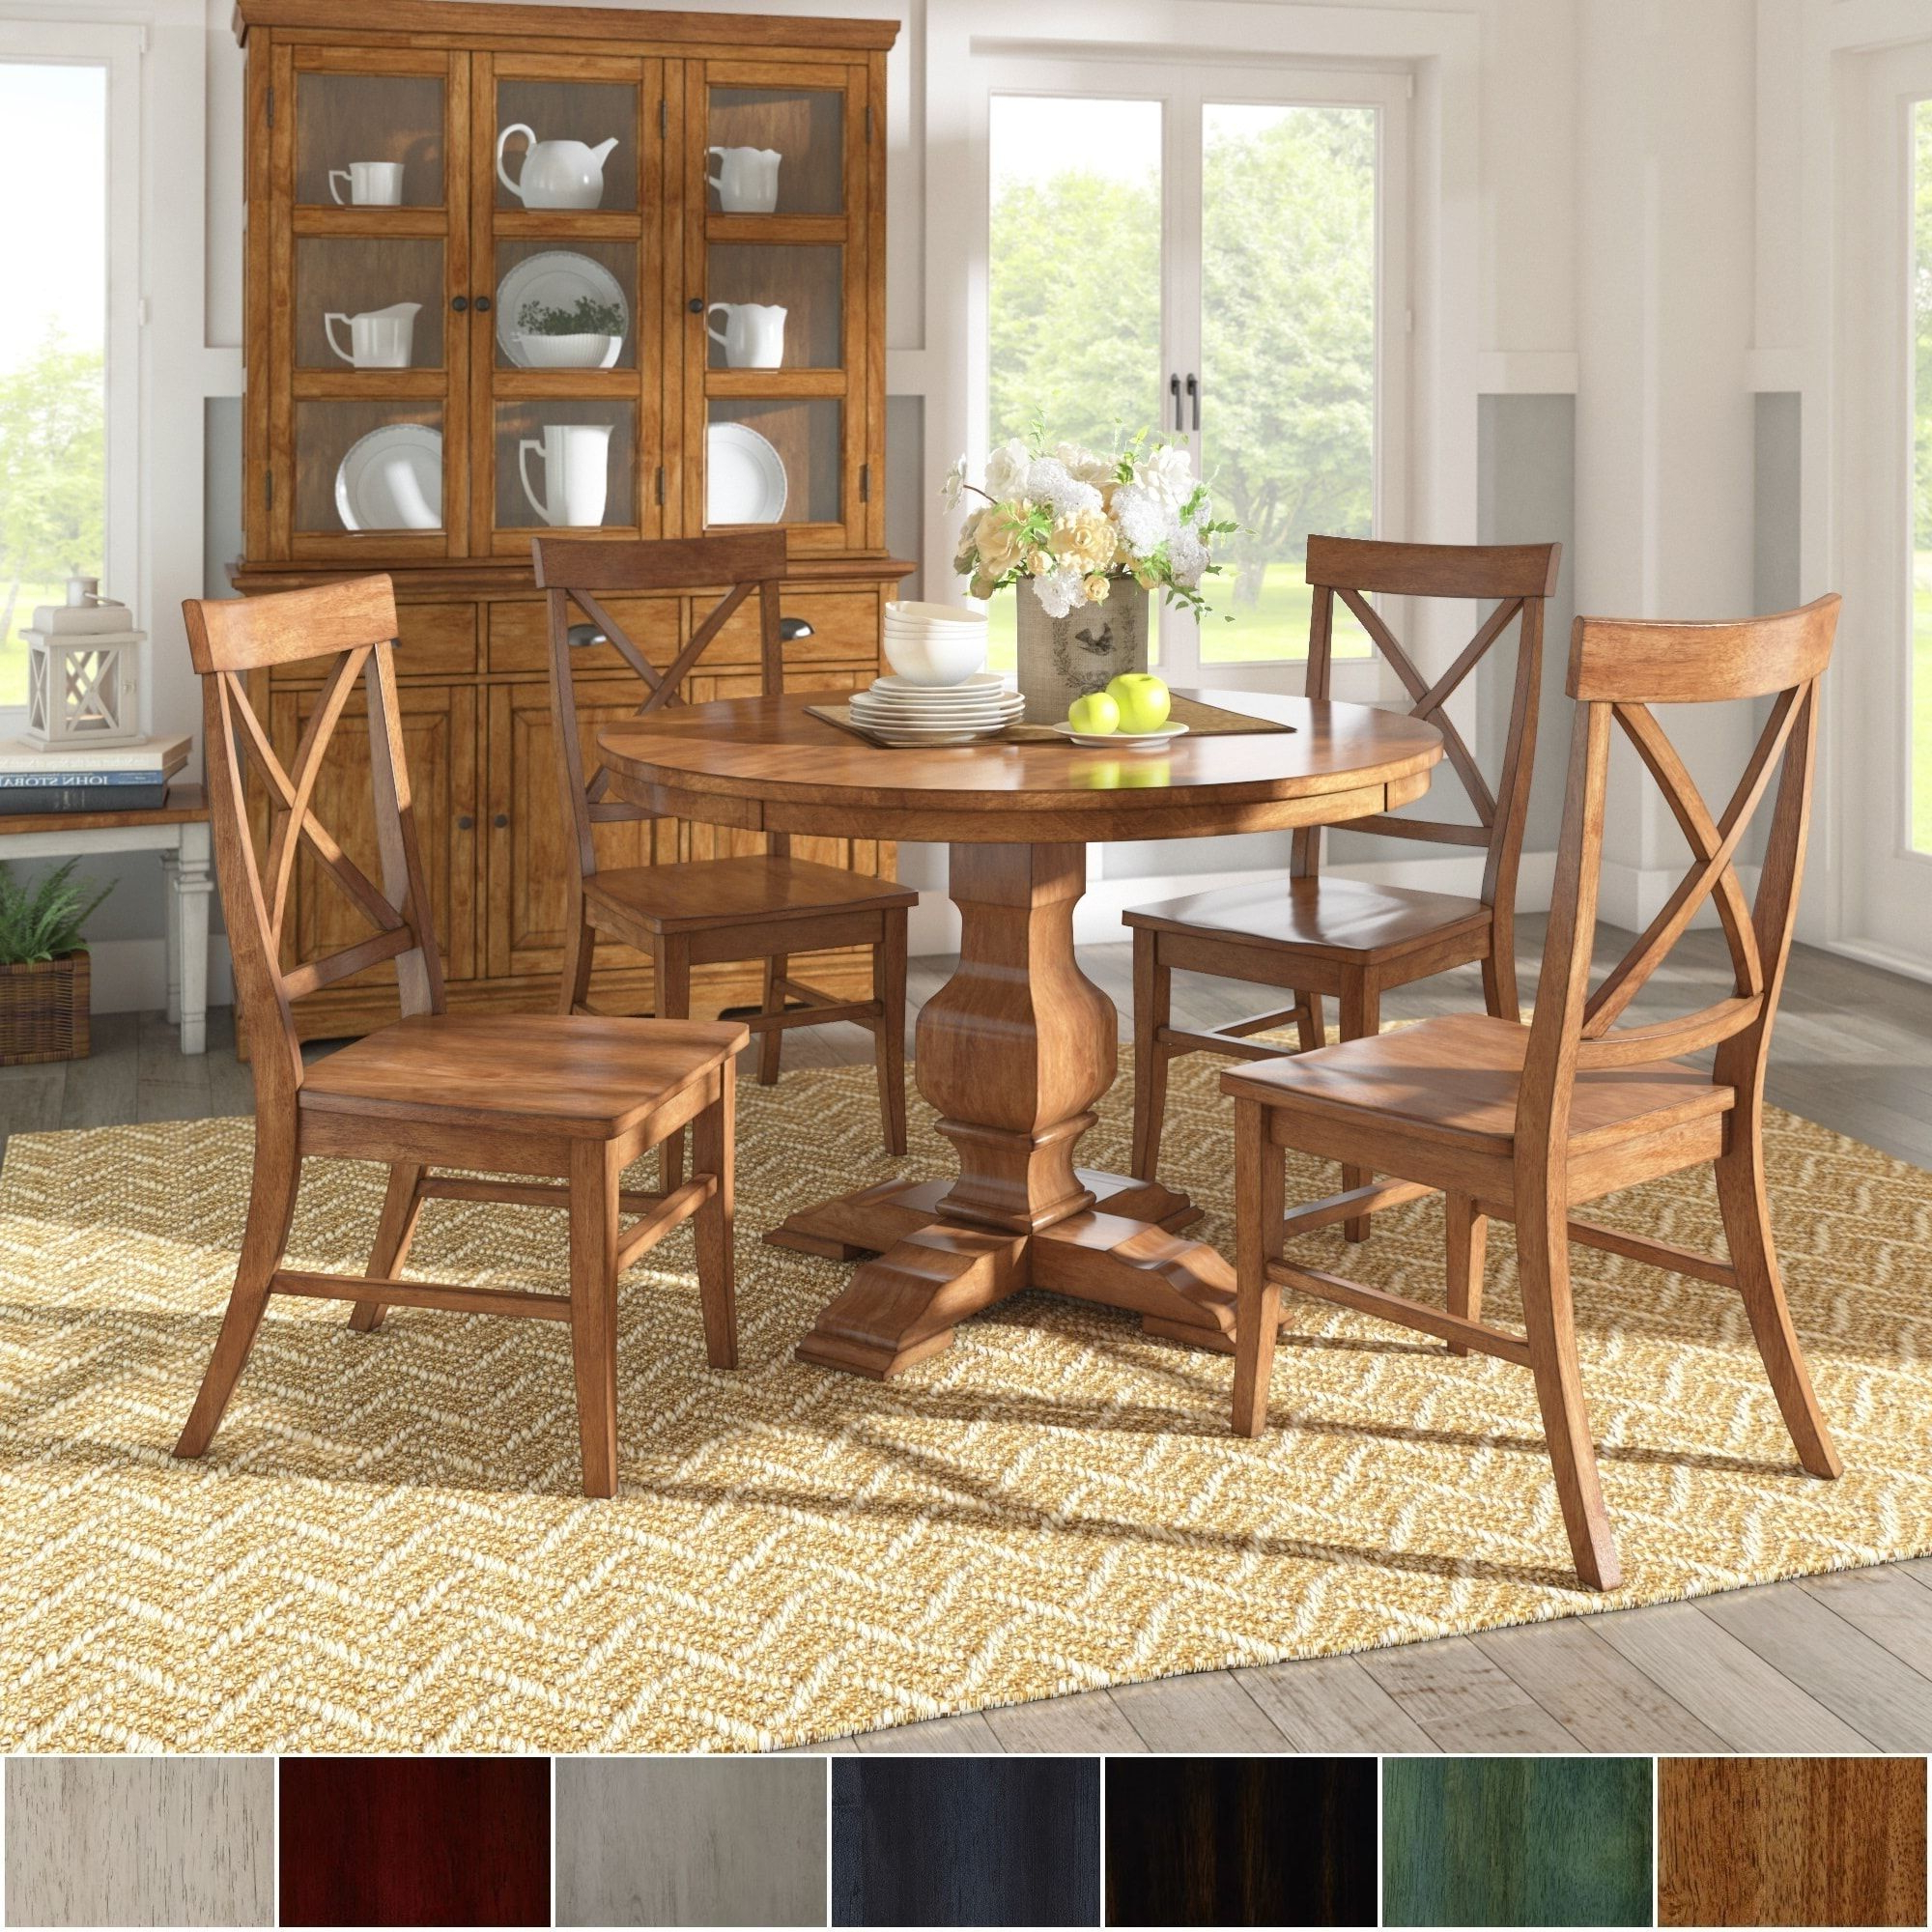 Most Popular Ephraim 5 Piece Dining Sets Intended For Eleanor Oak Finish Wood 5 Piece Round Table X Back Chairs Dining Set (View 15 of 25)